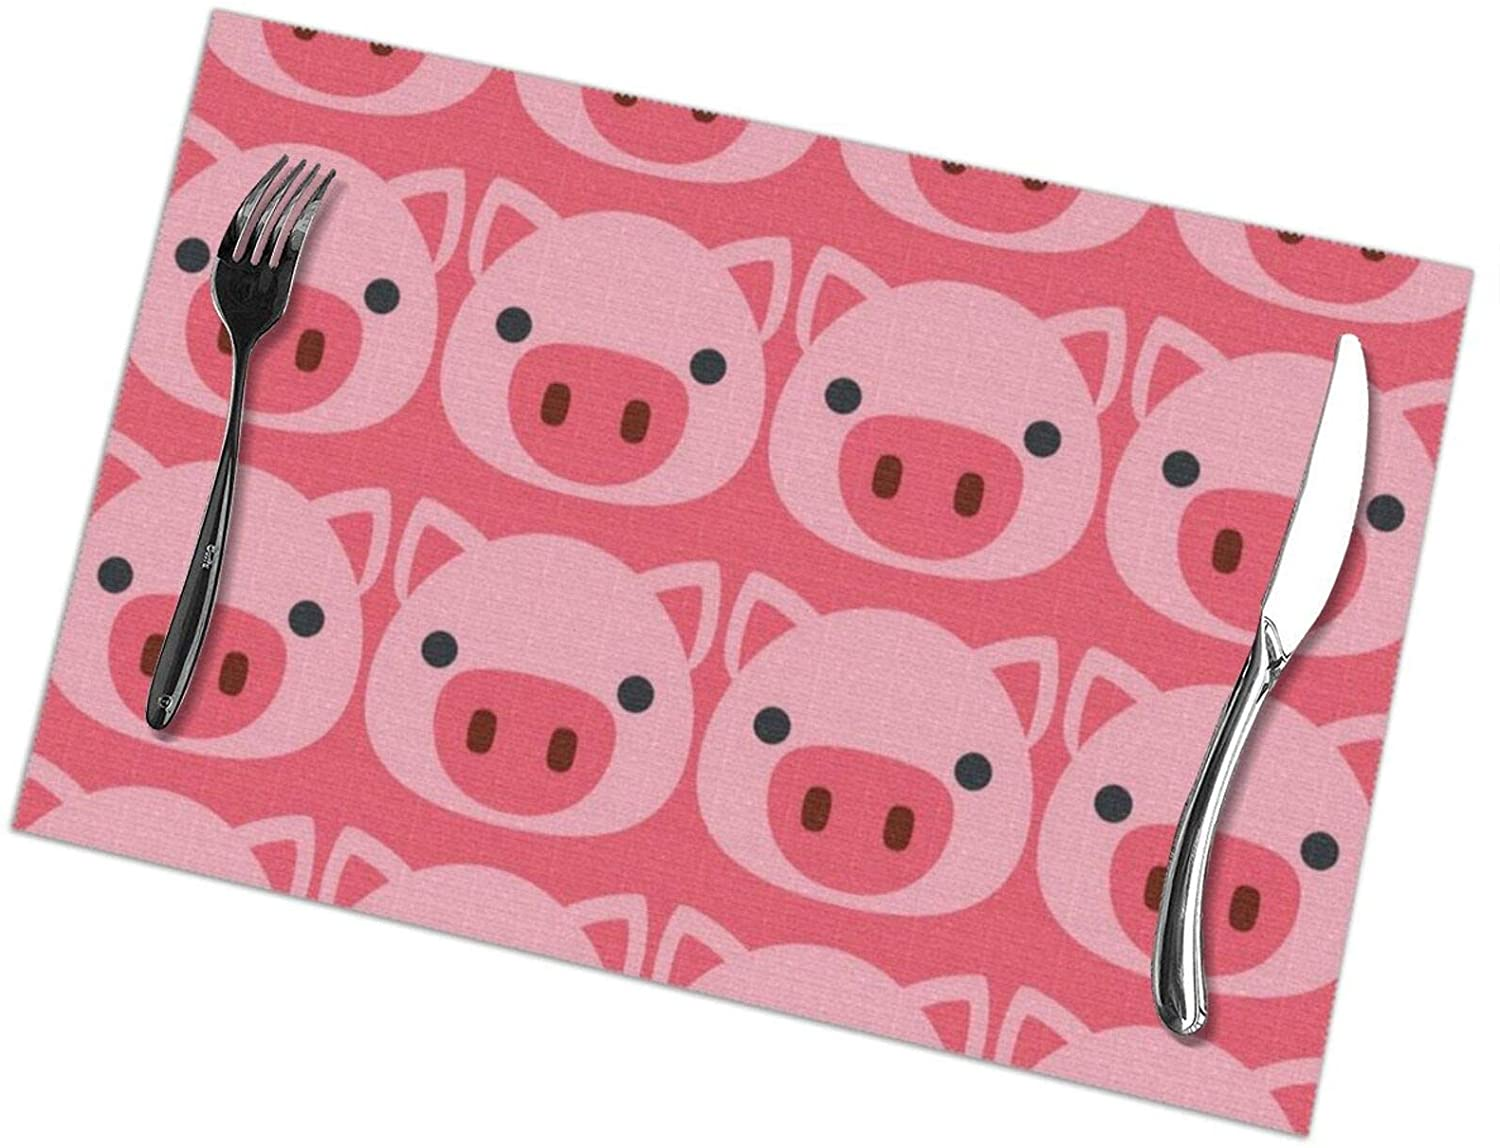 NiYoung Dinner Table Mats Set of 6 Placemats Washable Woven Heat Resistant Easy to Clean Non-Slip Placemats - Cute Pig Face Vintage